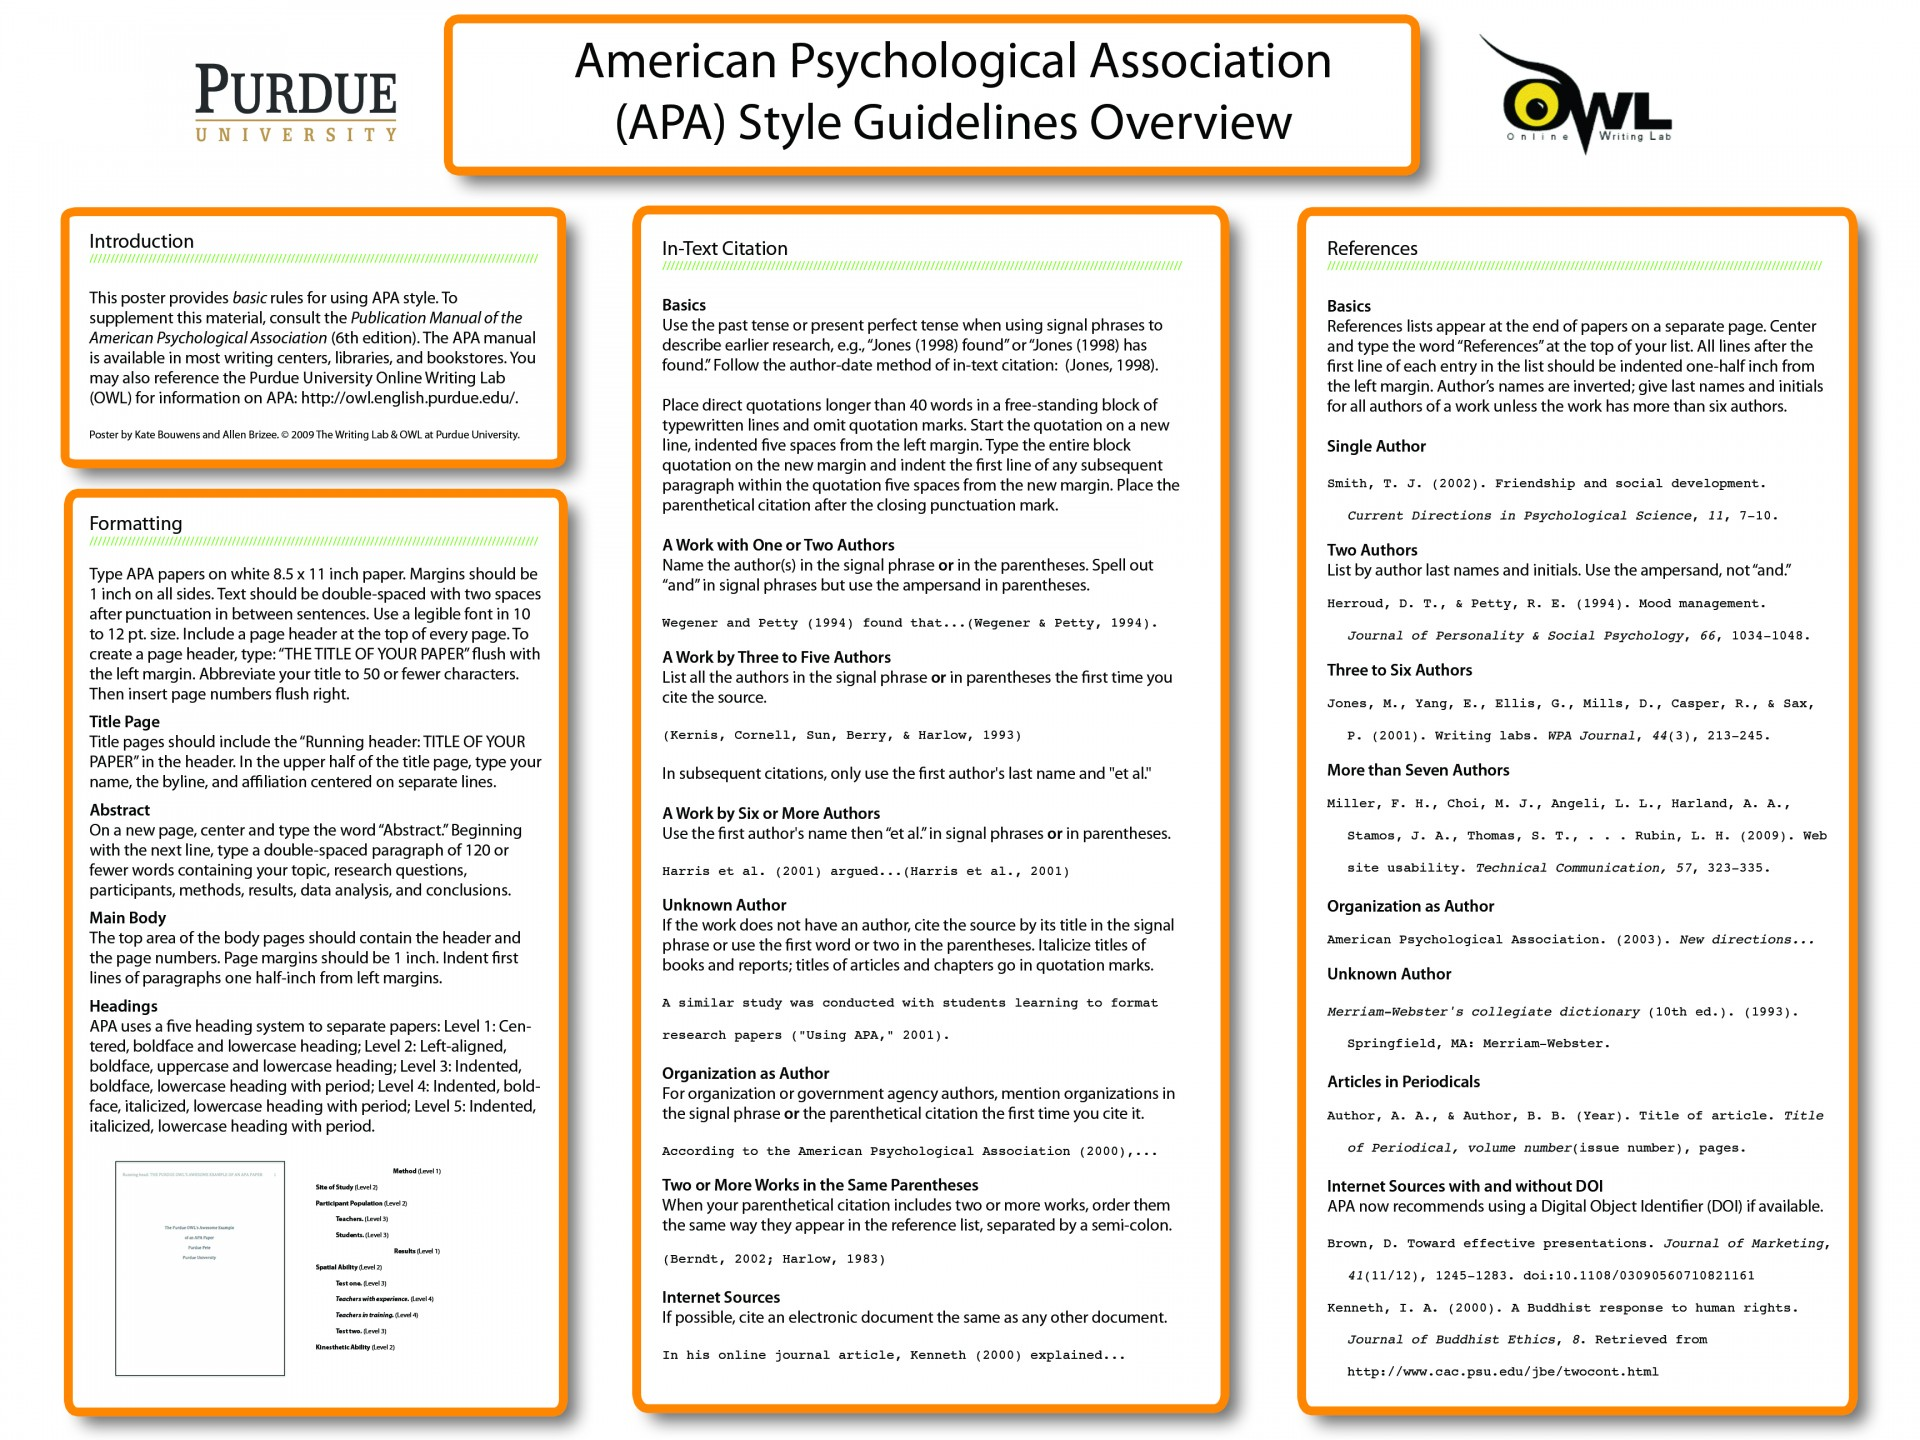 010 Apaposter09 Research Paper Apa Archaicawful Cite Works Cited Citation Generator 1920